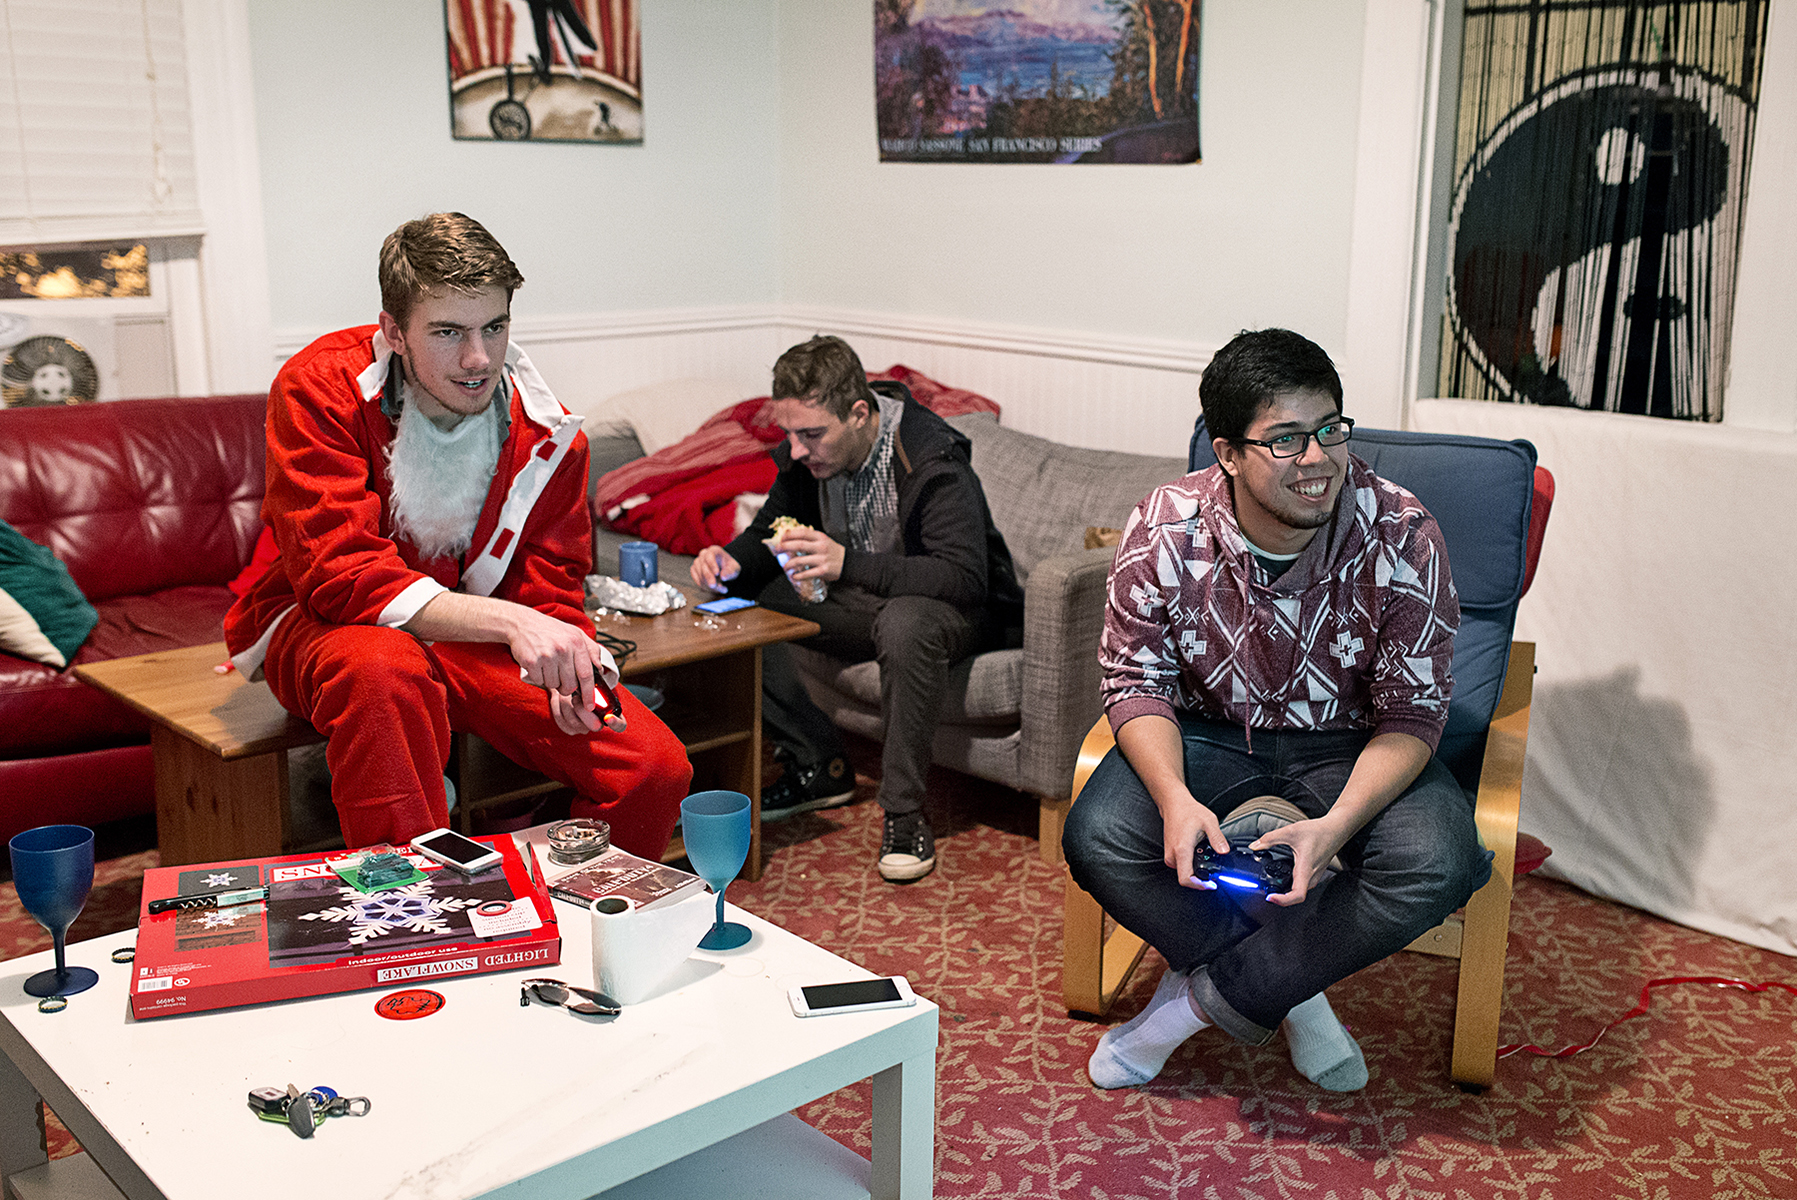 Sean Ross (left) plays video games with his housemate Bastian Ermann while hanging out in the common room at 20 Mission with Henri Roussez (center) in San Francisco, Calif., on Saturday, December 13, 2014. The co-living house is home to around 45 people, many of whom are entrepreneurs or working in the tech industry. Most of the residents have their own room, but share the common room, one kitchen and two bathrooms.